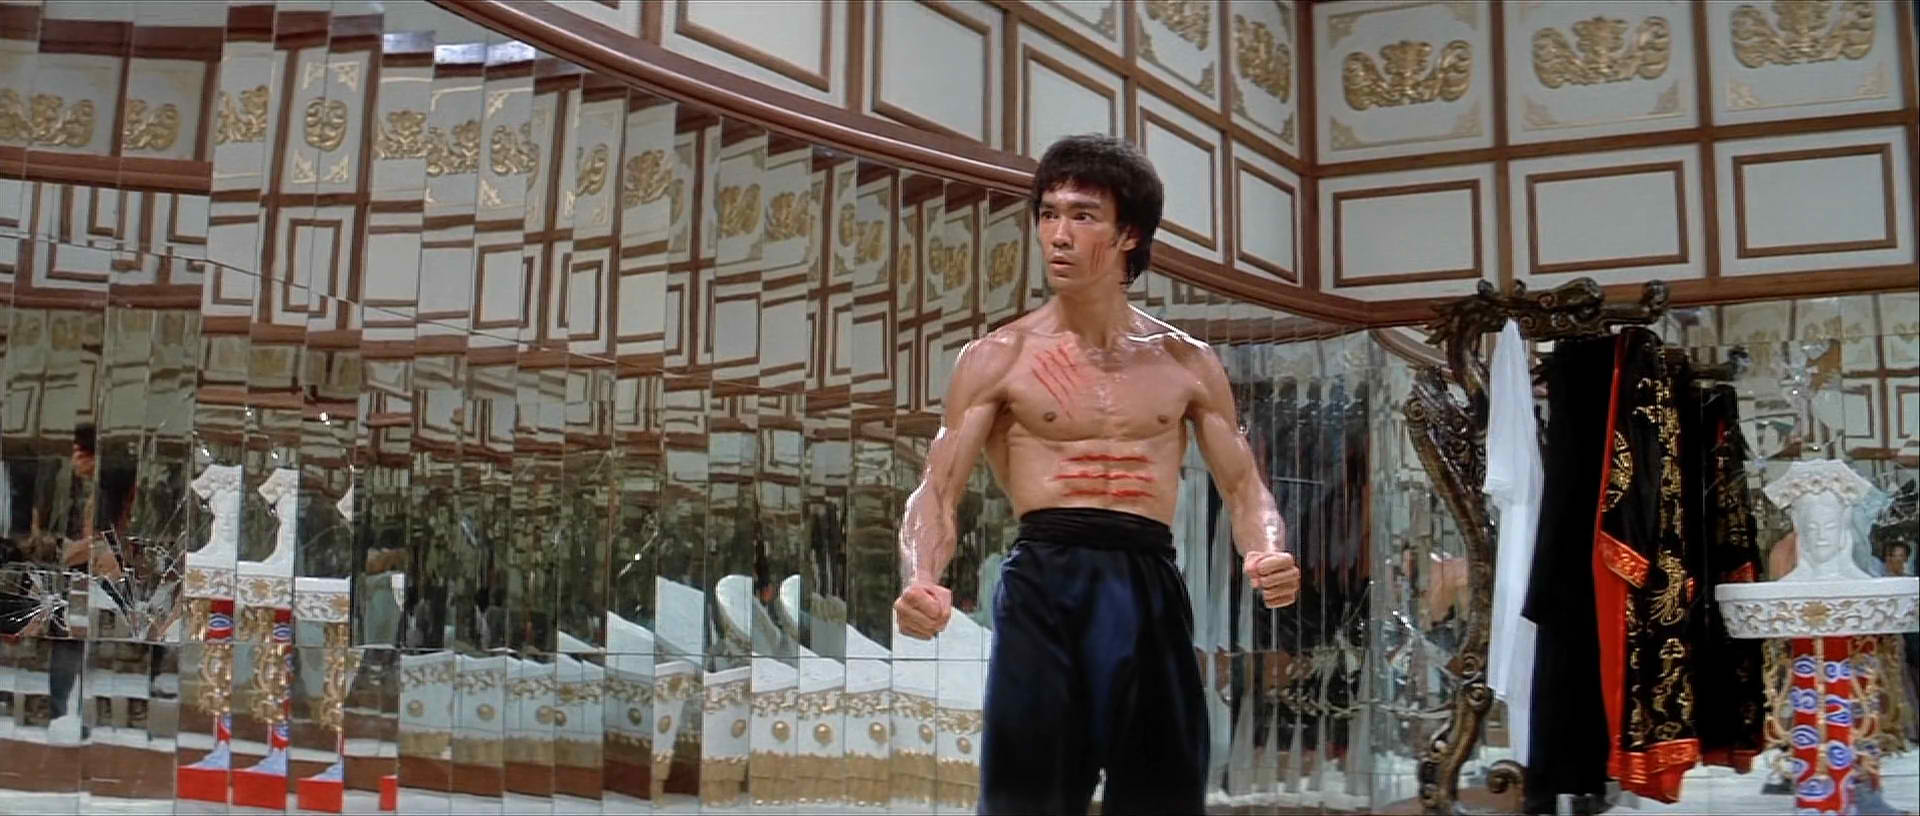 The 10 Most Inspiring Training Scenes in Movie History | Complex